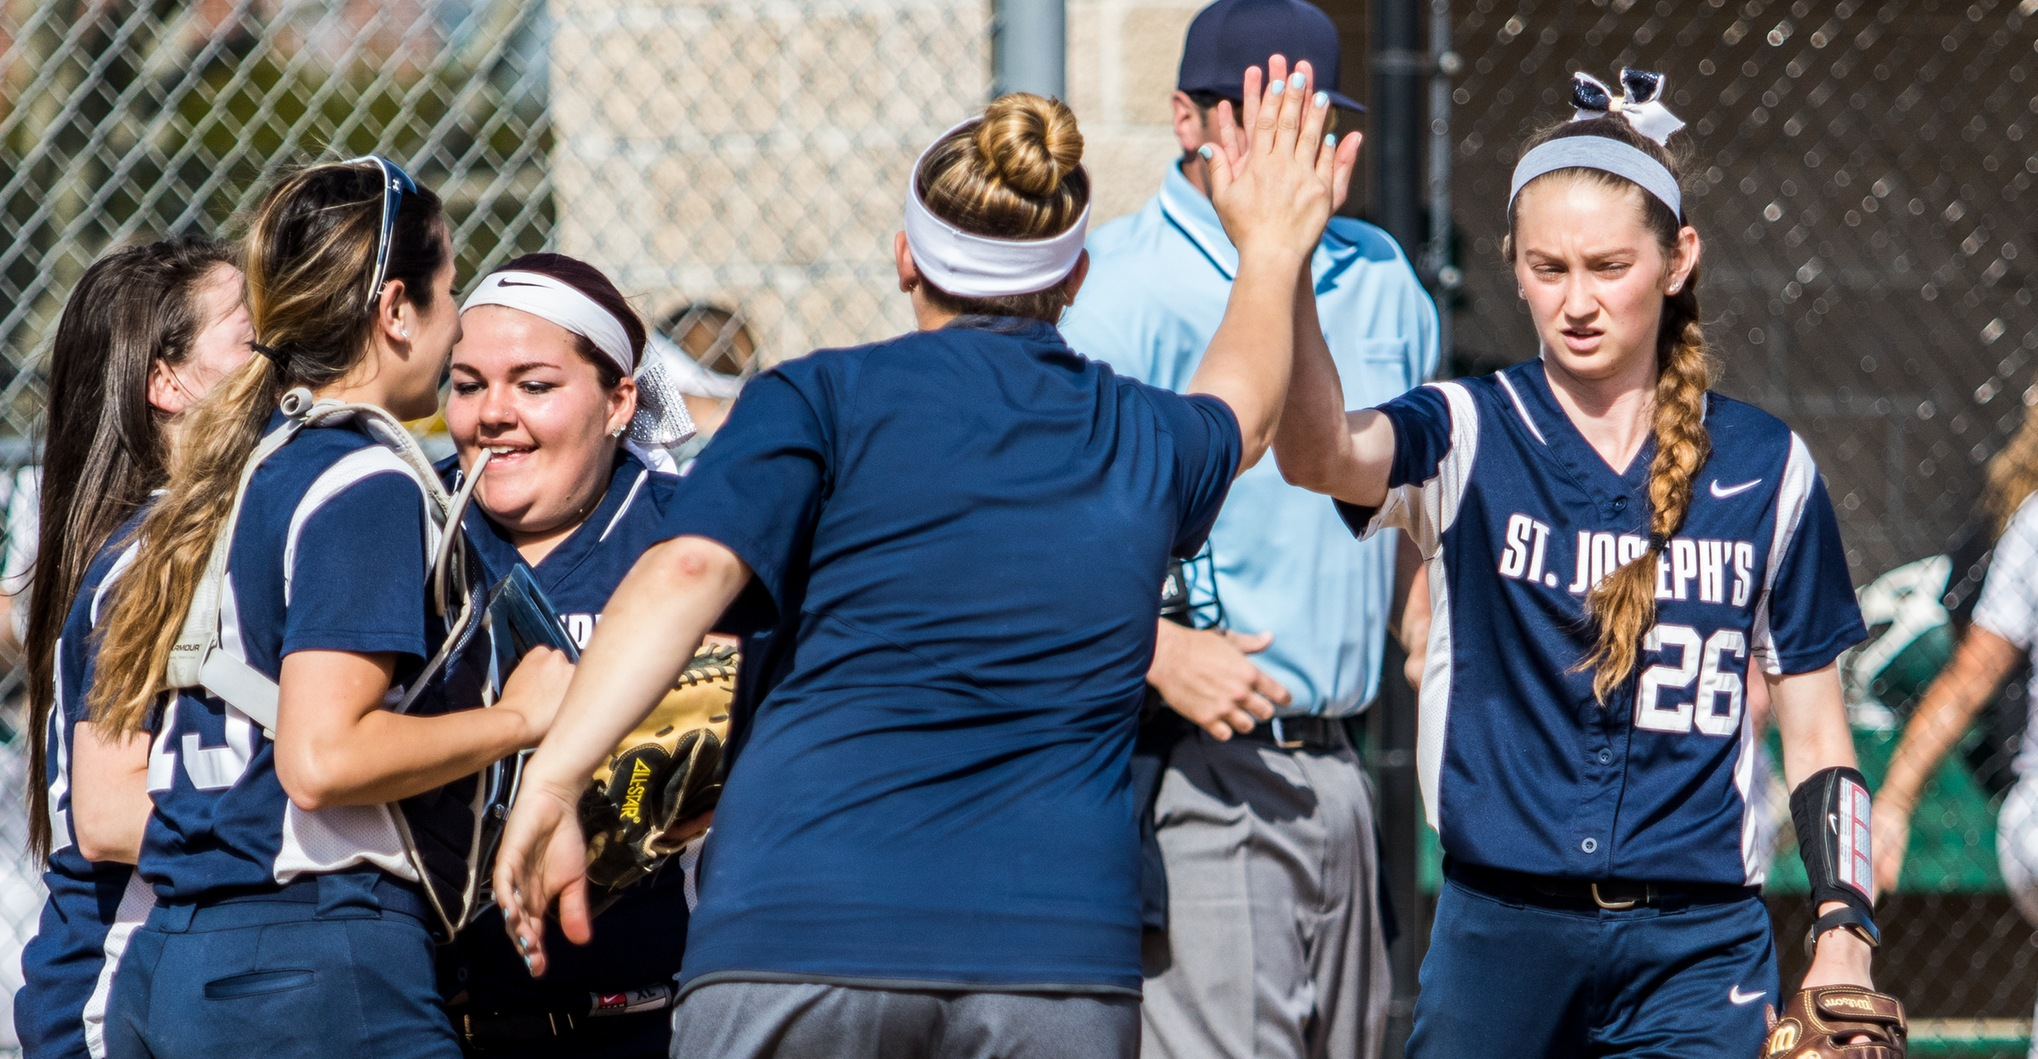 Softball Season Ends in Skyline First Round With 2-0 Loss to Farmingdale State